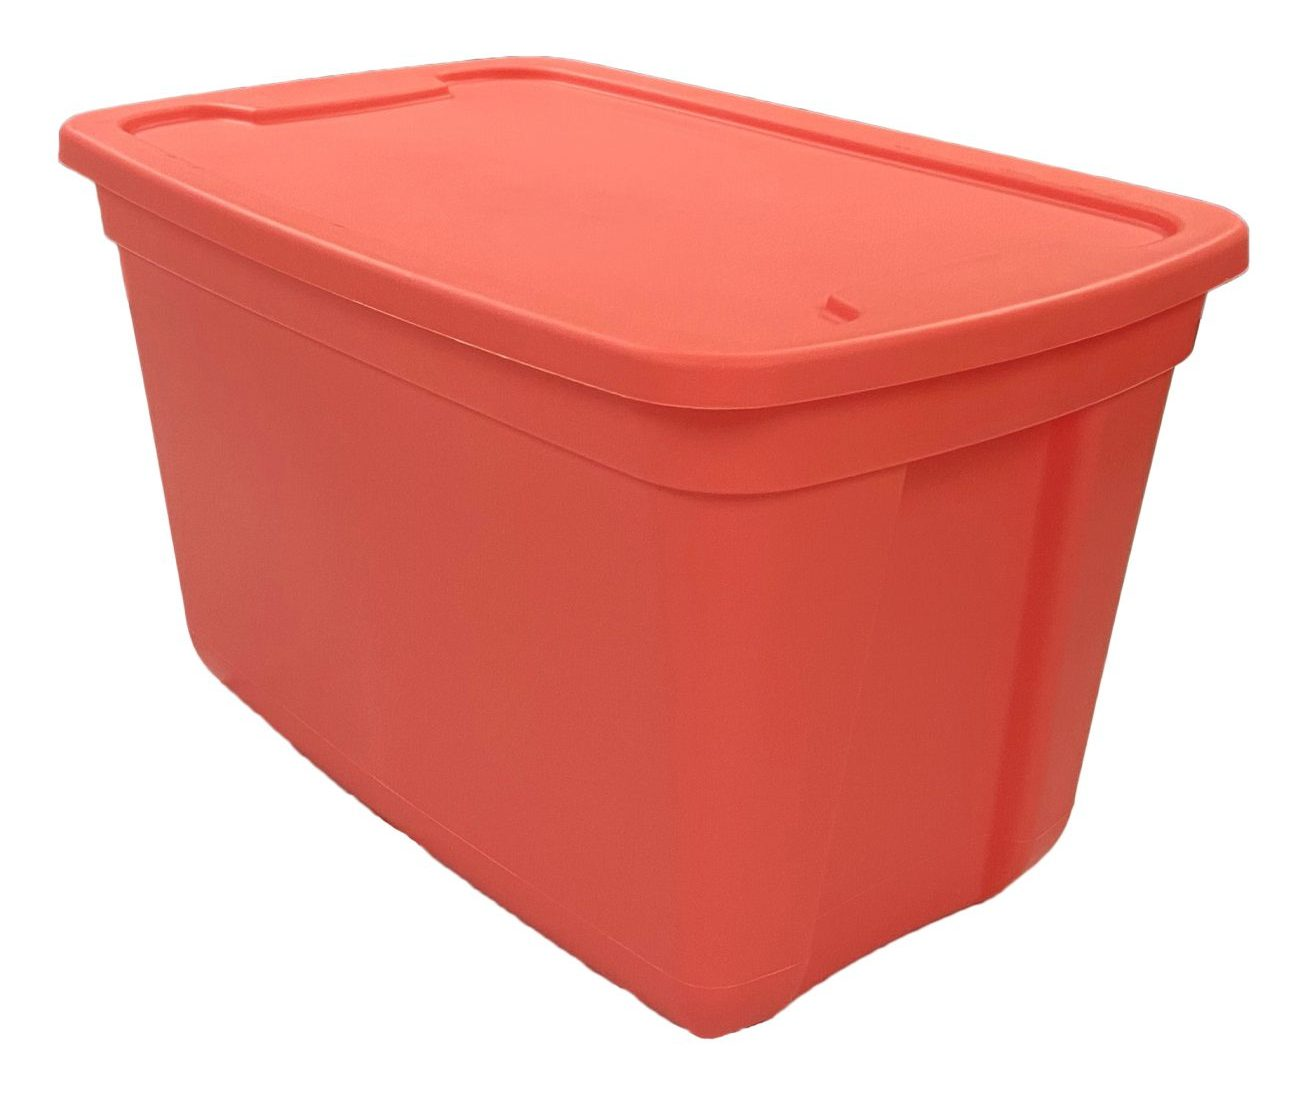 home storage totes, Edge Plastics Inc. Injection Molding Manufacturer, New York